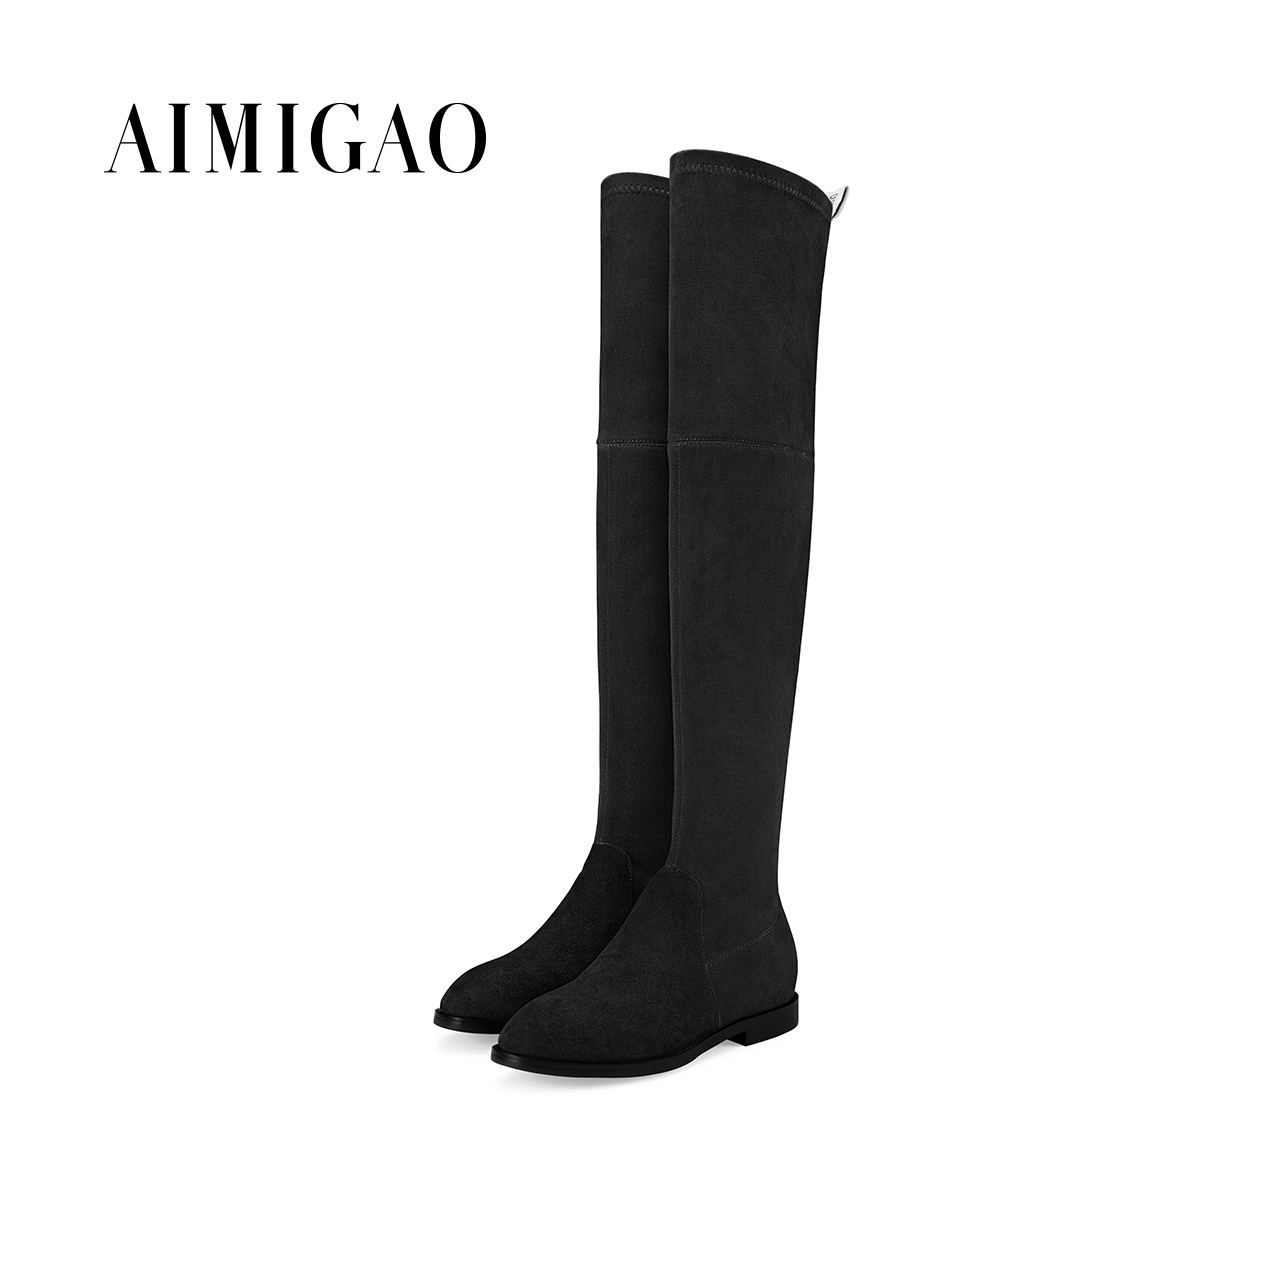 AIMIGAO sexy slim fit over knee boots women round toe low heel boots 2017 autumn winter new suede leather high boots women 2017 new arrival winter plush genuine leather basic women boots knight zipper round toe low heel knee high boots zy170904